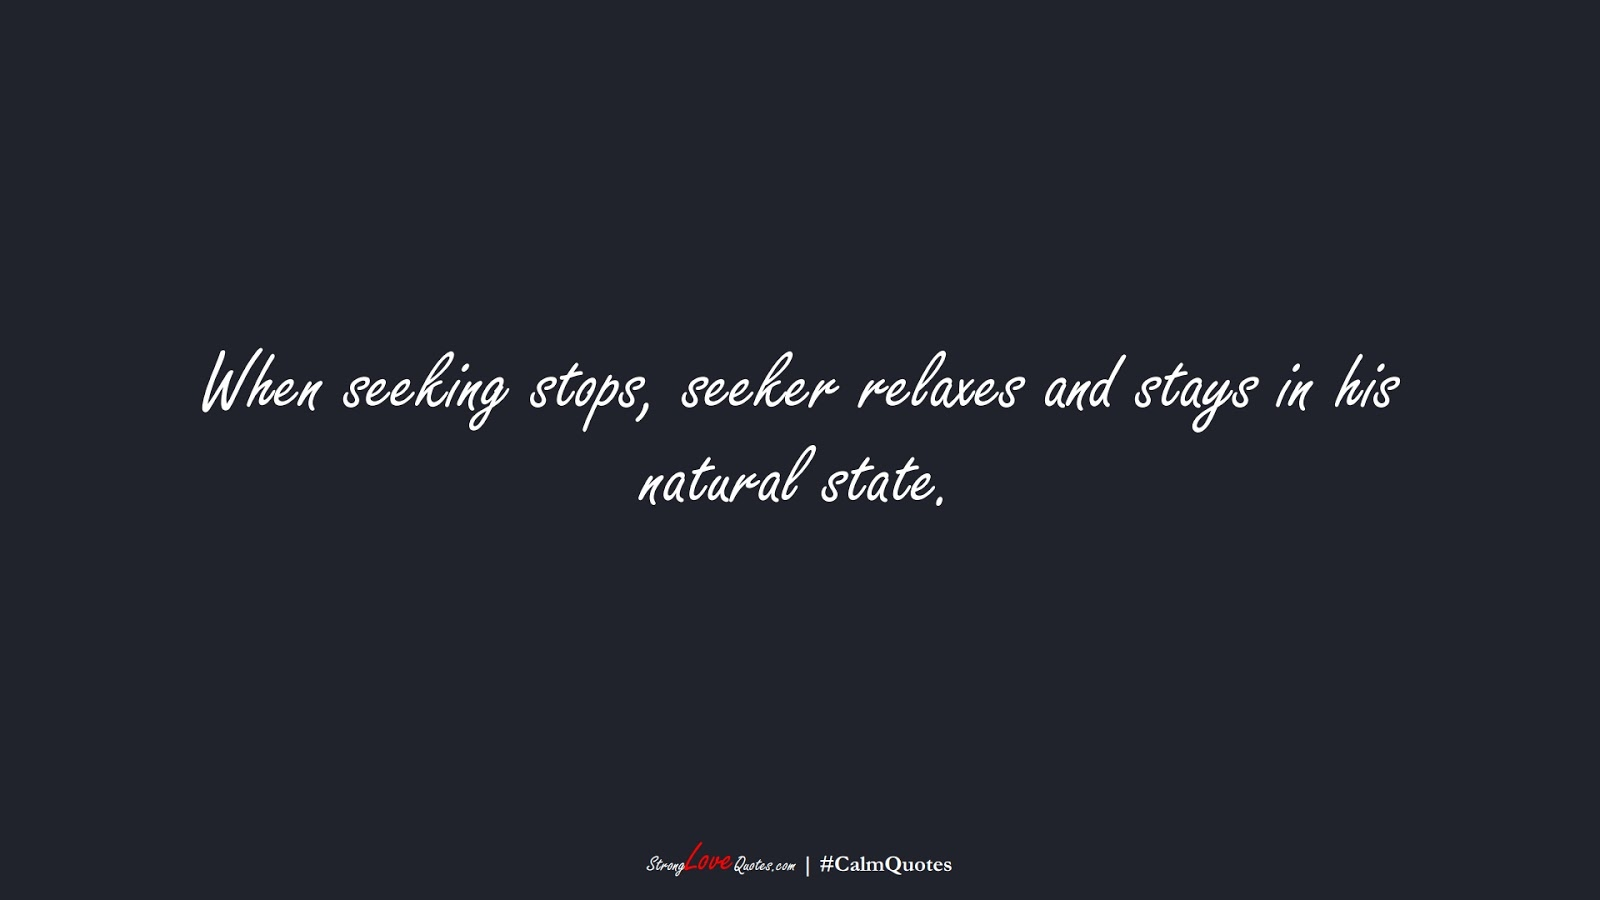 When seeking stops, seeker relaxes and stays in his natural state.FALSE